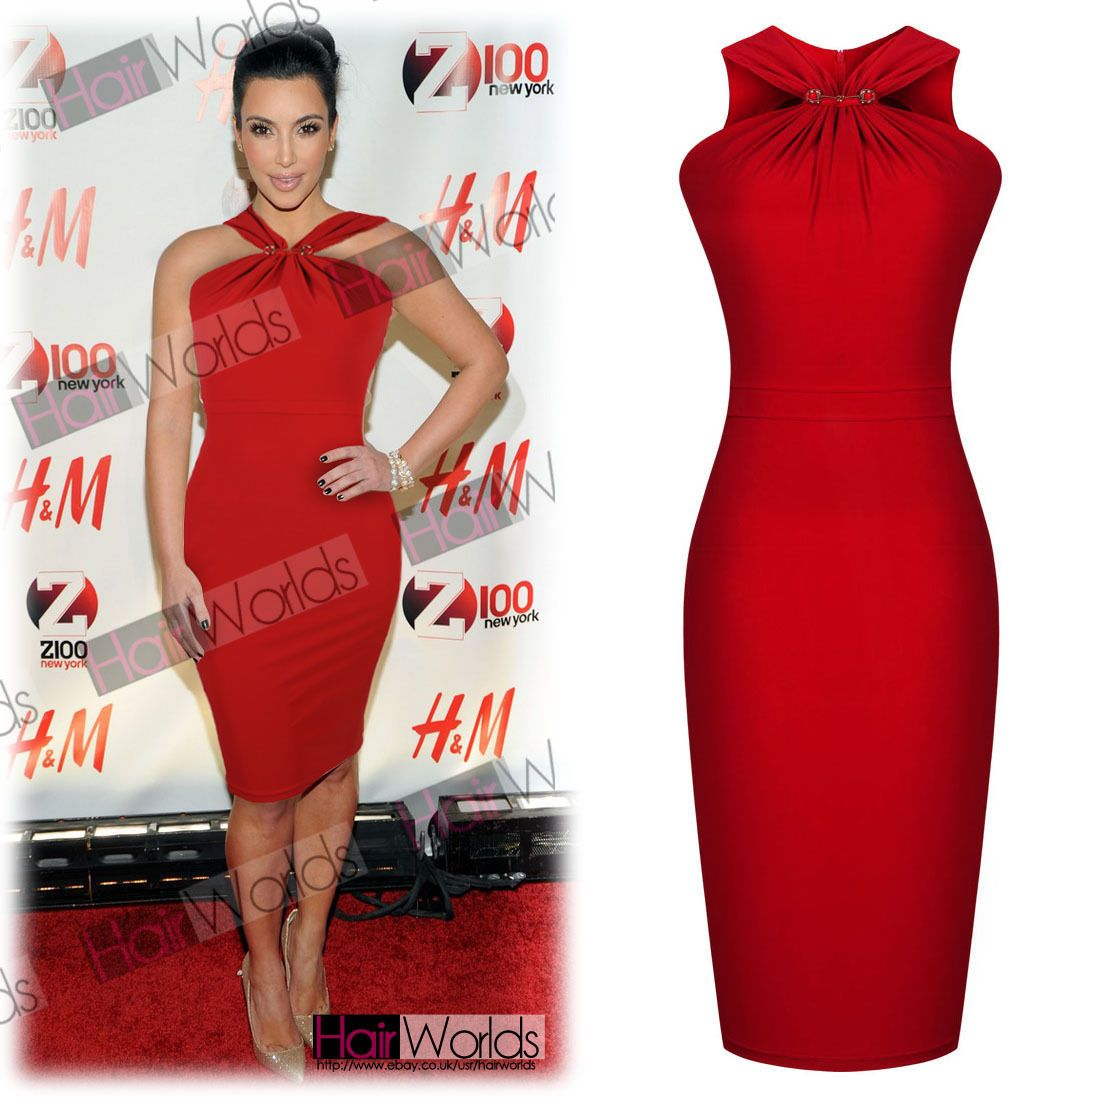 Bandage bodycon dresses 0 celebrities 1639 get lucky extra 50 0 - Pinkglitter Hen Night Party Dress Ideas Short And Sexy